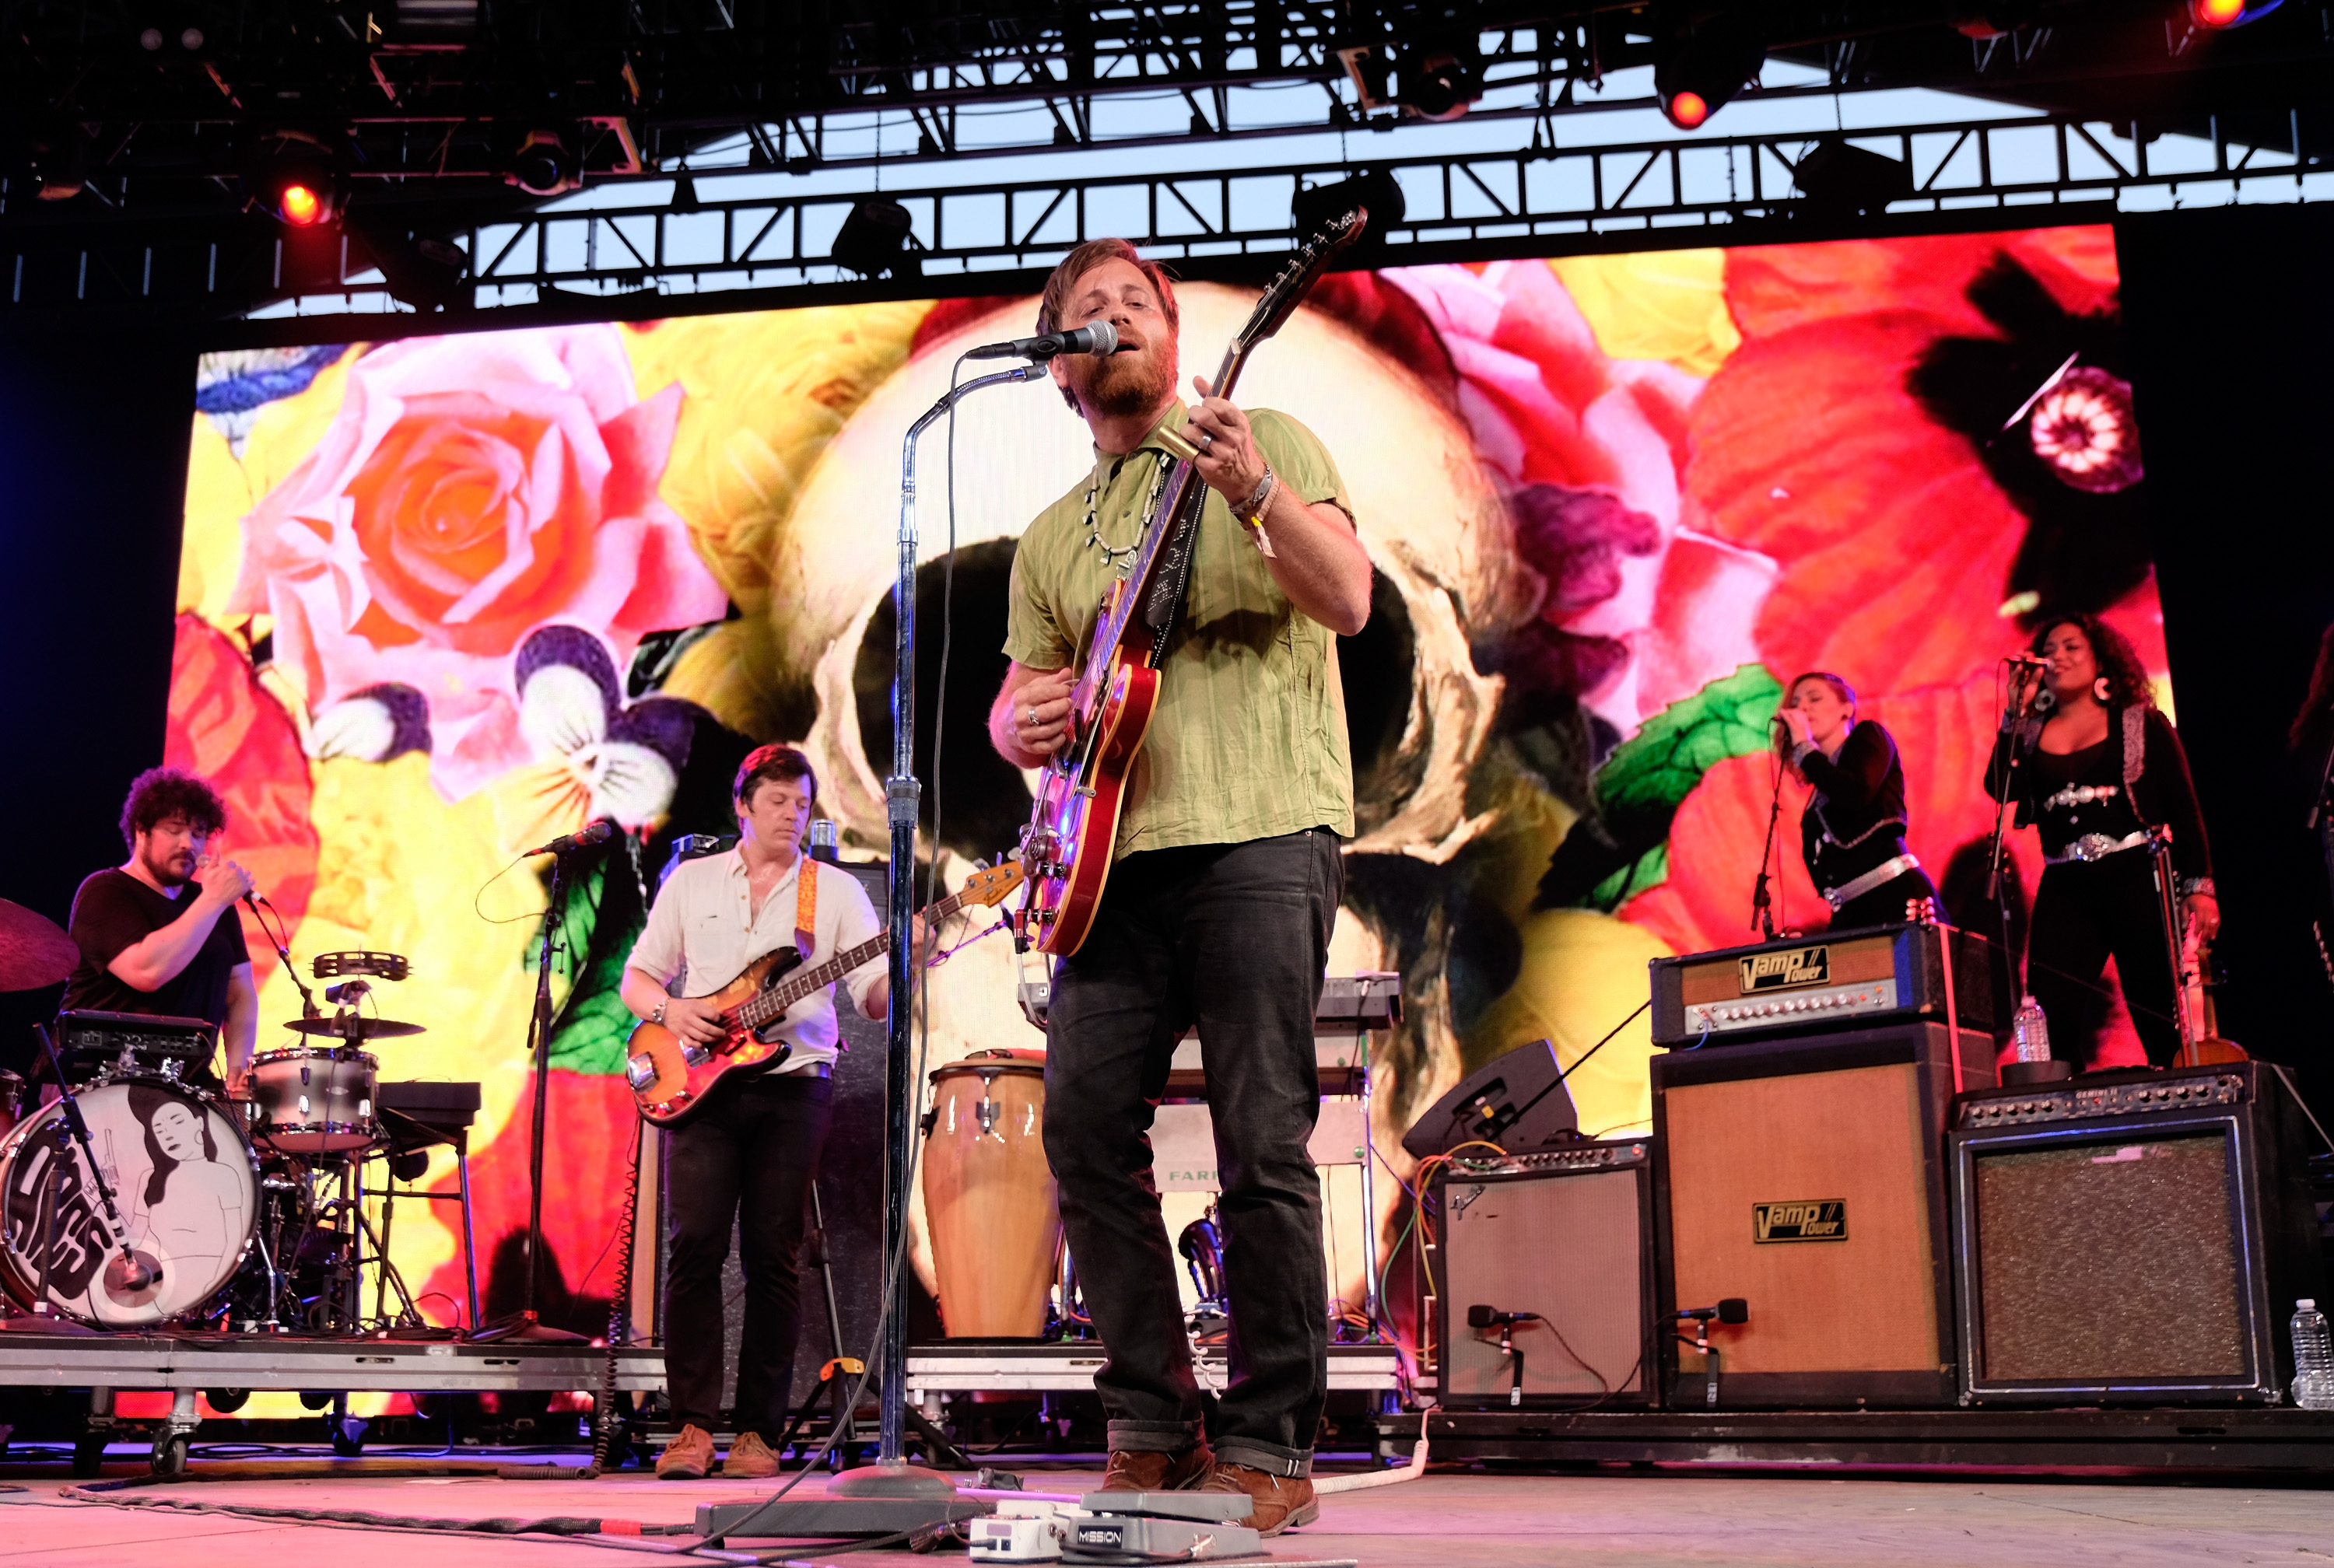 INDIO, CA - APRIL 23: Musician Dan Auerbach of The Arcs performs onstage during day 2 of the 2016 Coachella Valley Music & Arts Festival Weekend 2 at the Empire Polo Club on April 23, 2016 in Indio, California. (Photo by Frazer Harrison/Getty Images for Coachella)